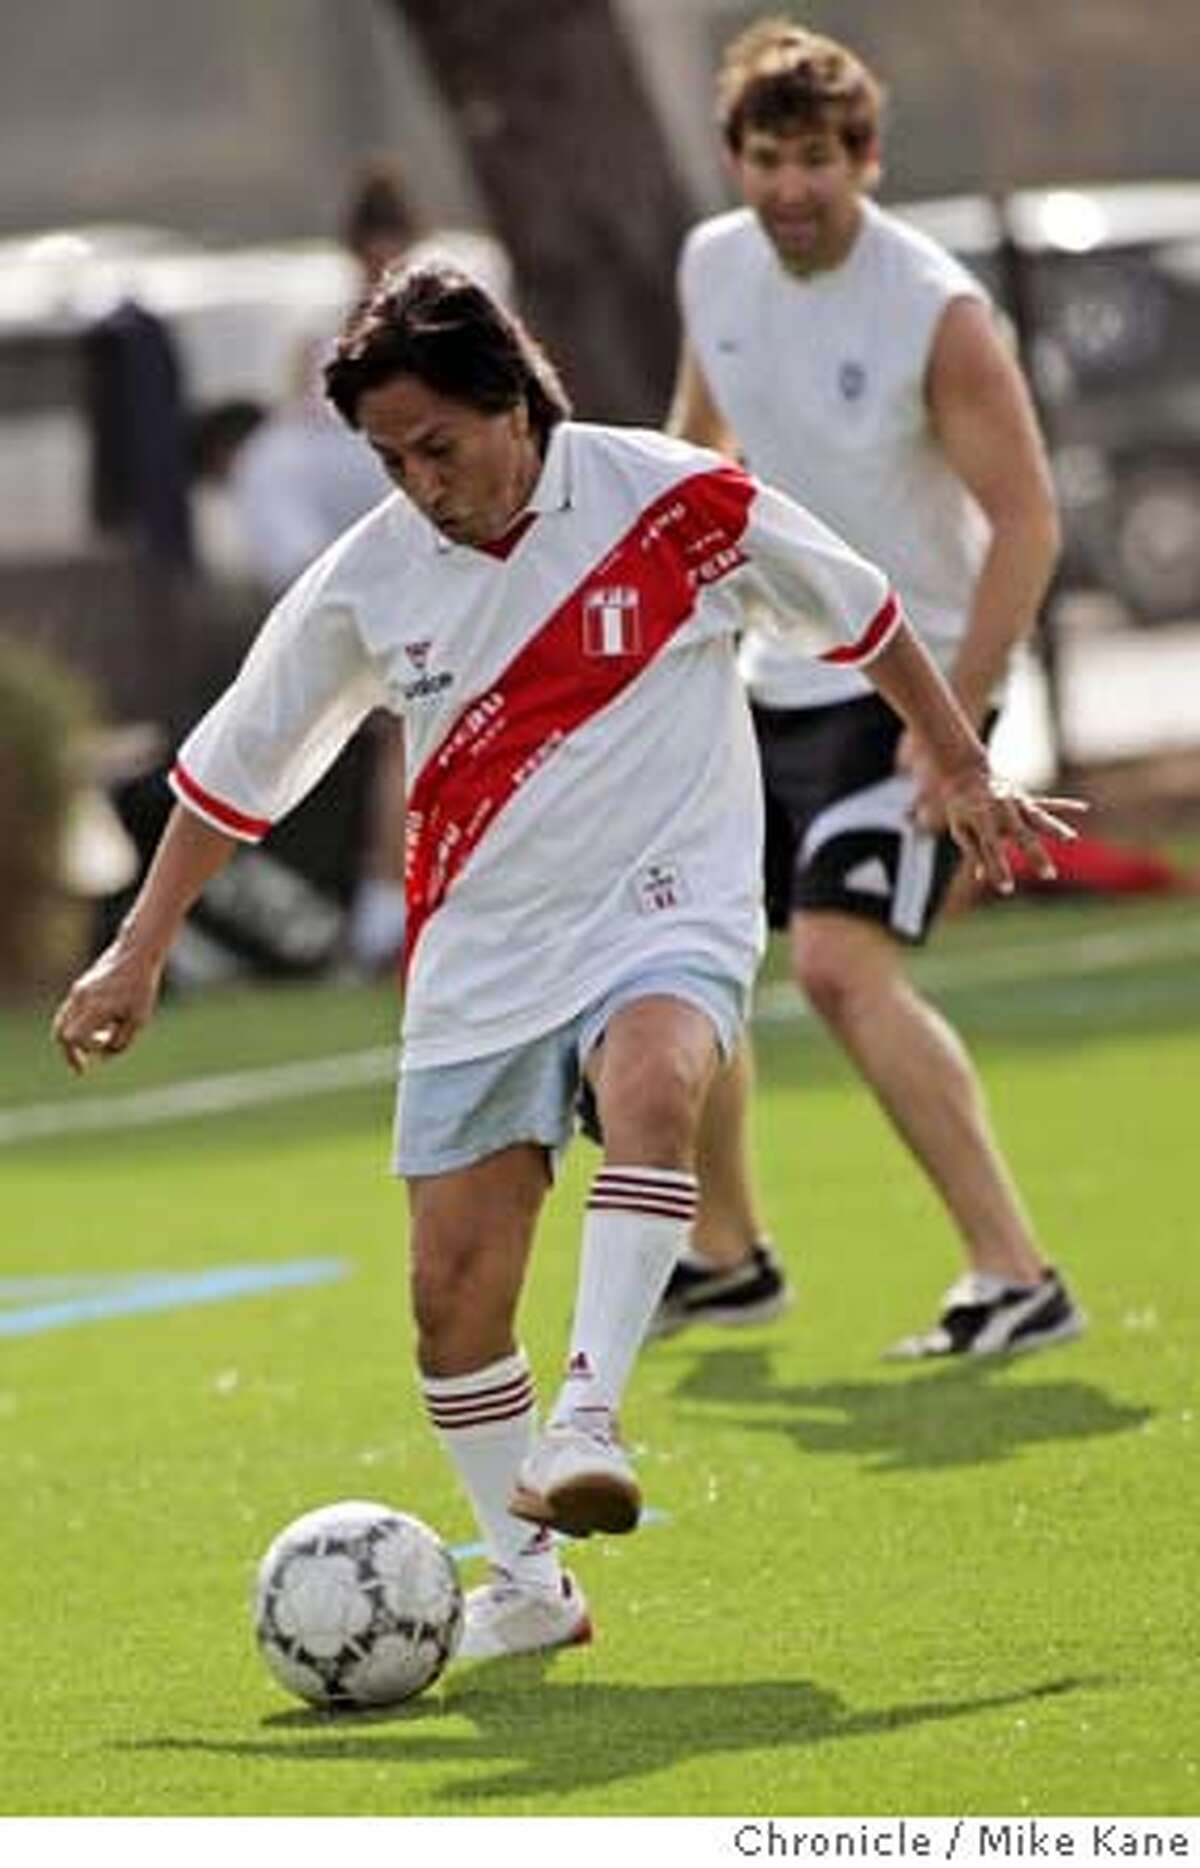 Former president of Peru Alejandro Toledo plays pick-up soccer on Stanford's campus in Palo Alto, CA, on Tuesday, February, 6, 2007.